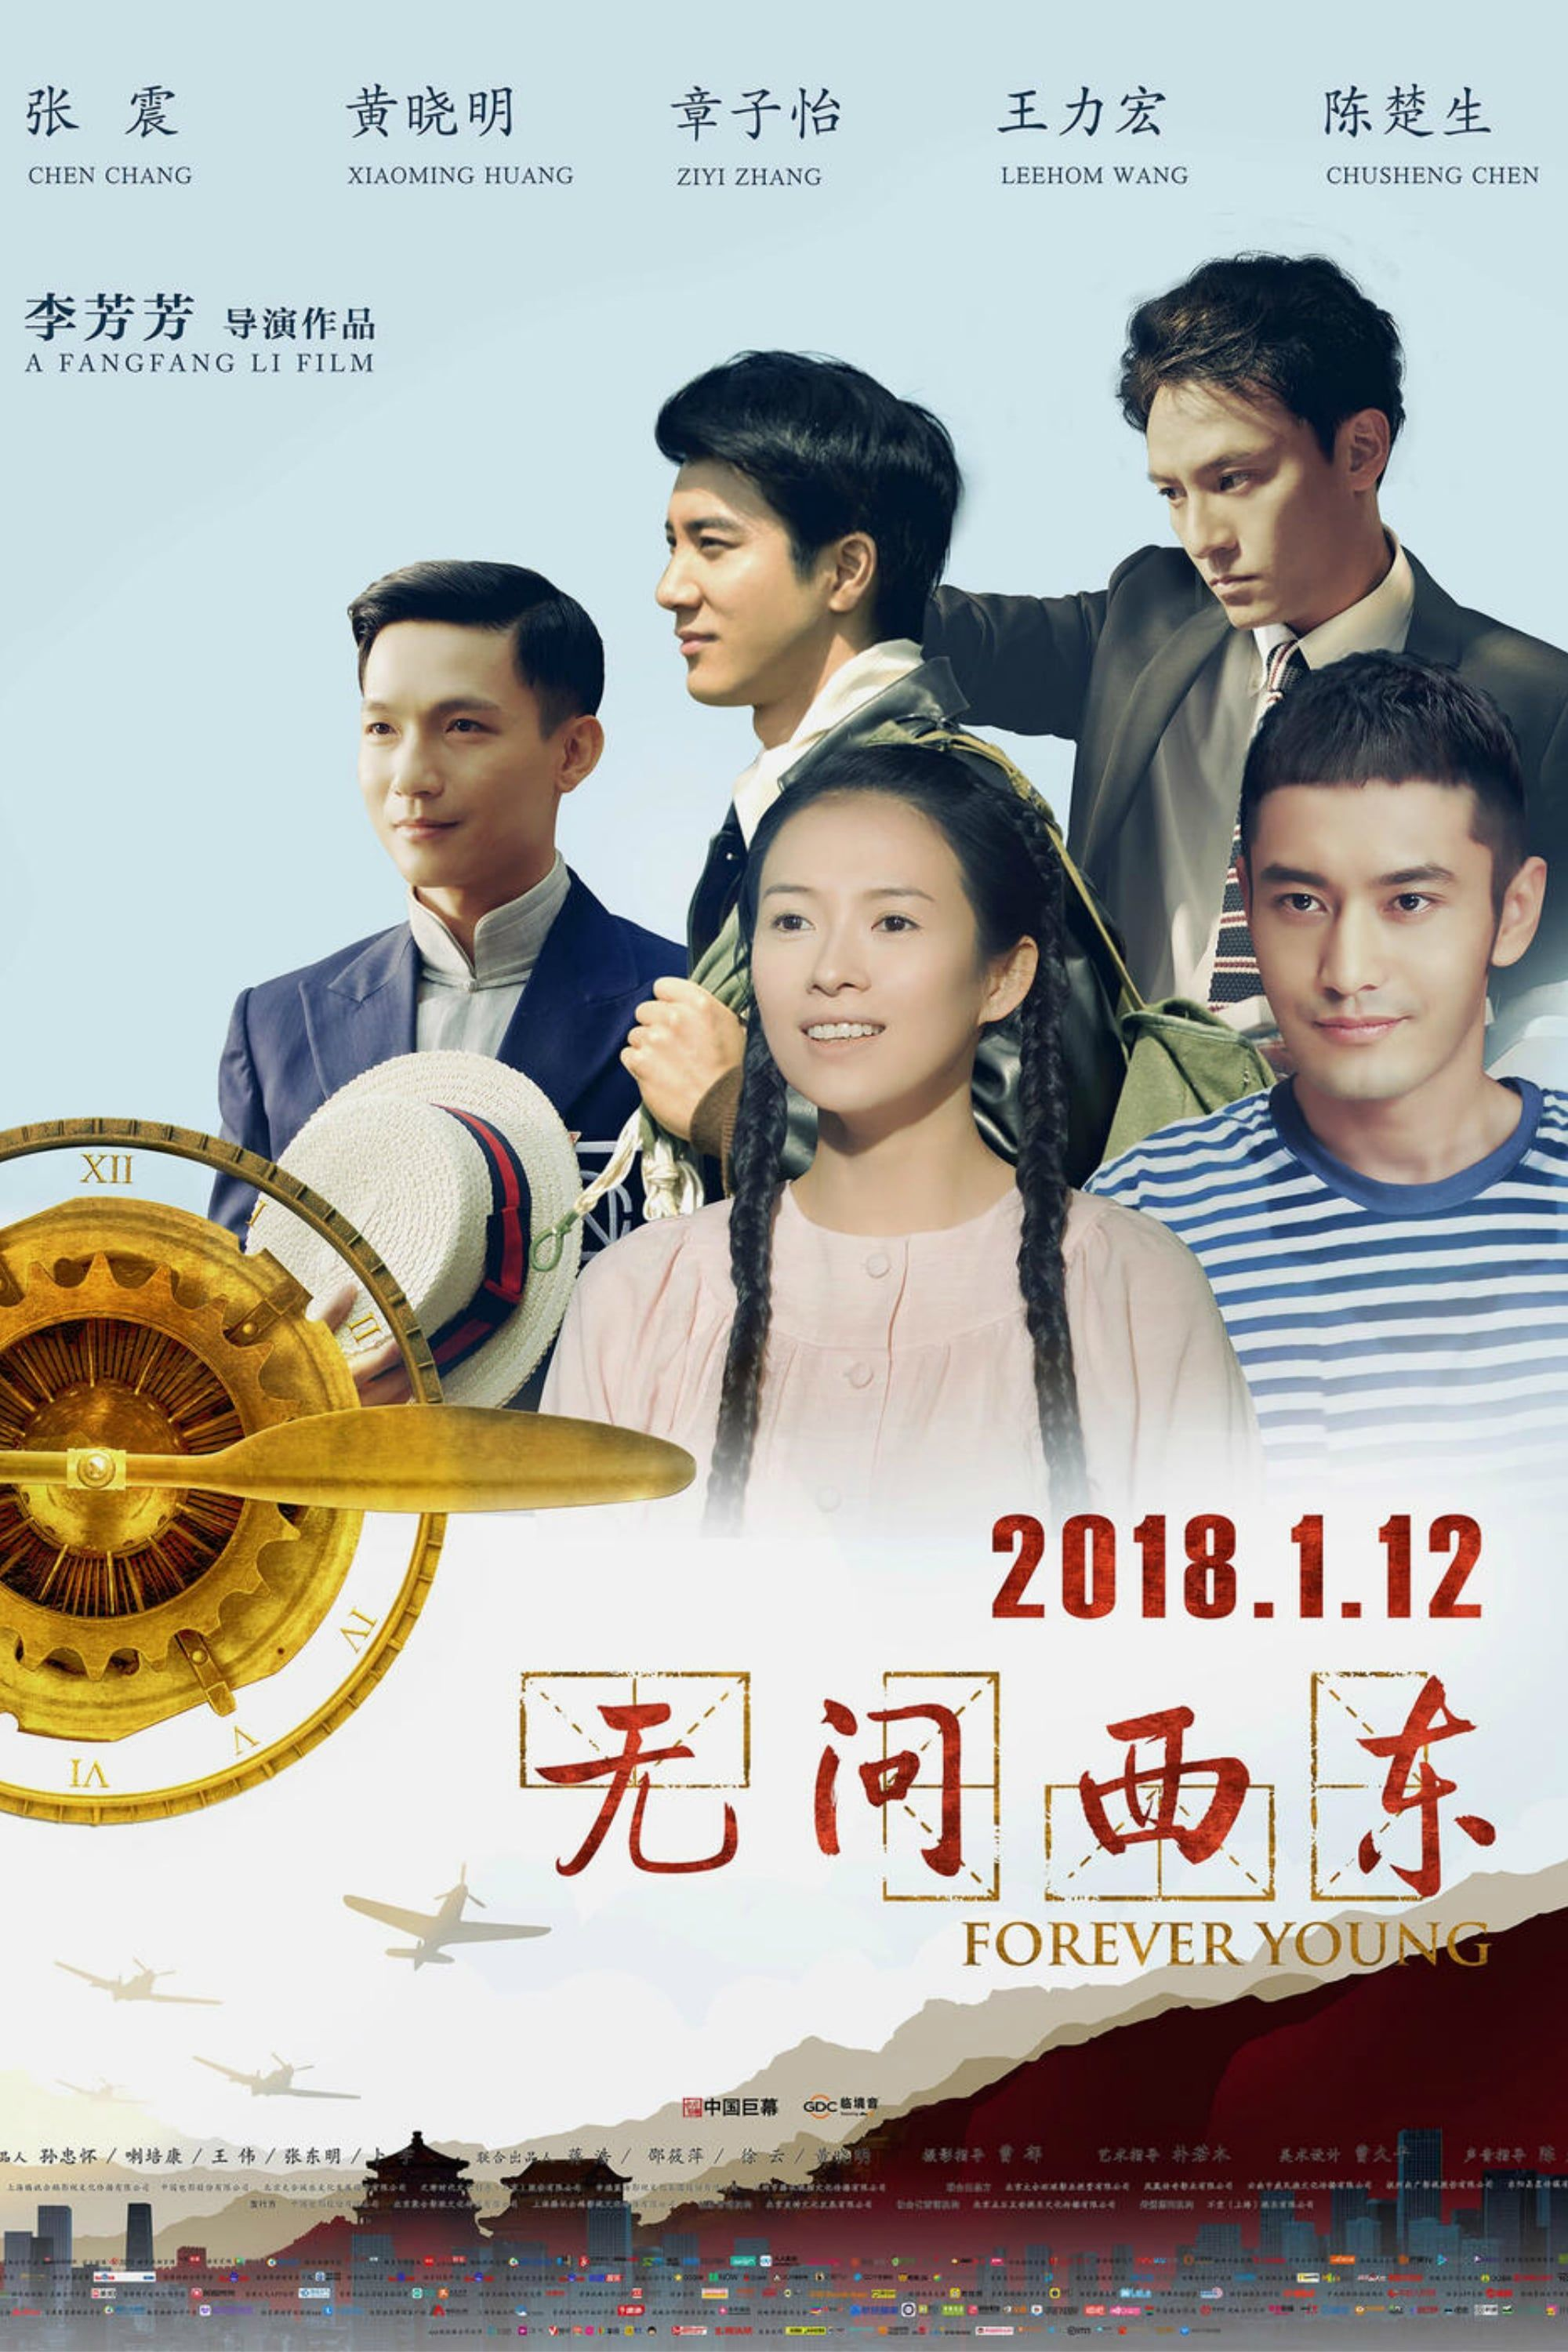 Forever young china movie 2018 cinema peliculas